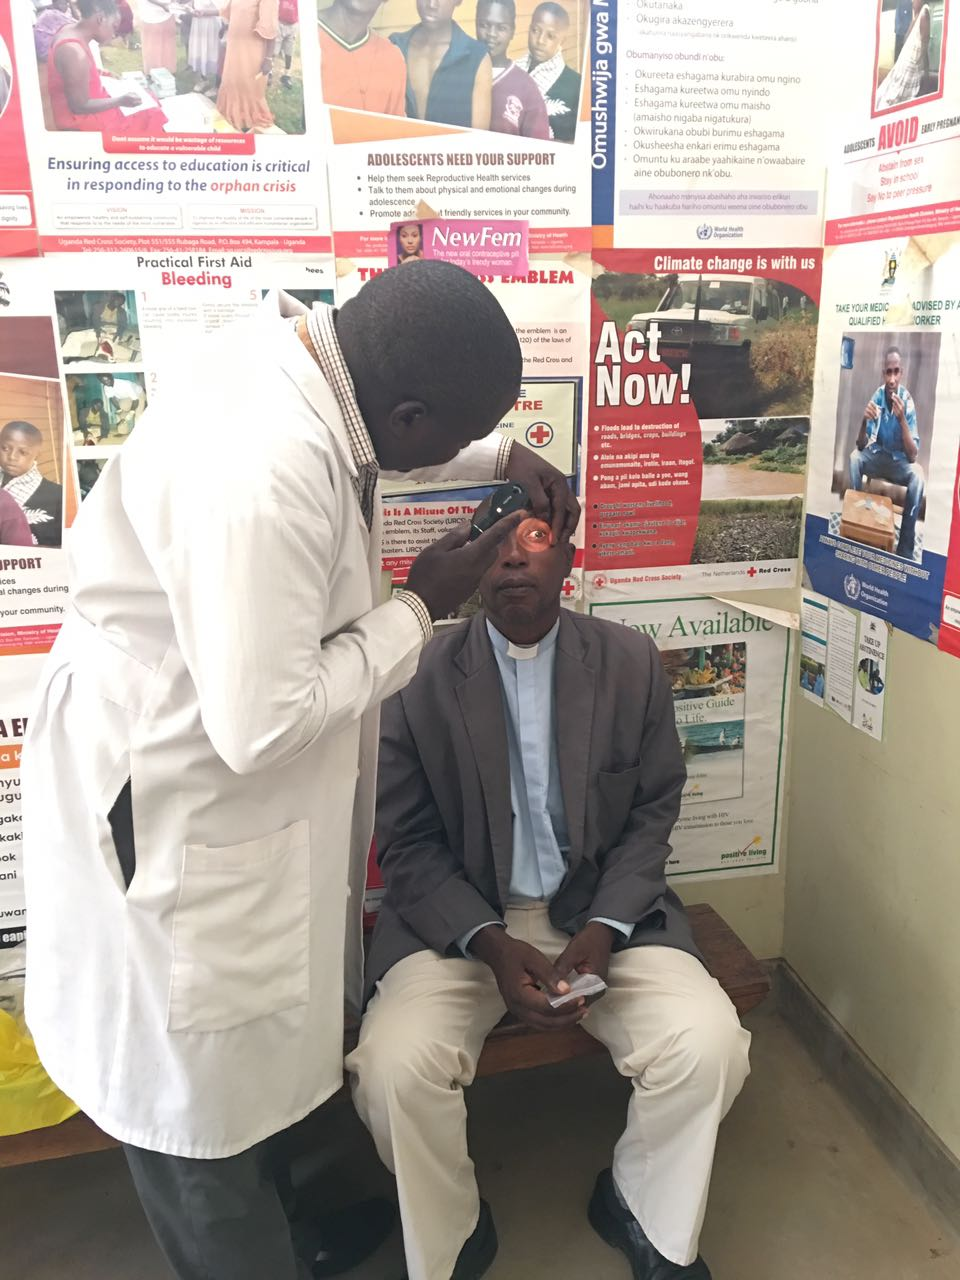 Alex using the ophthalmoscope on a patient to assess his eye health.